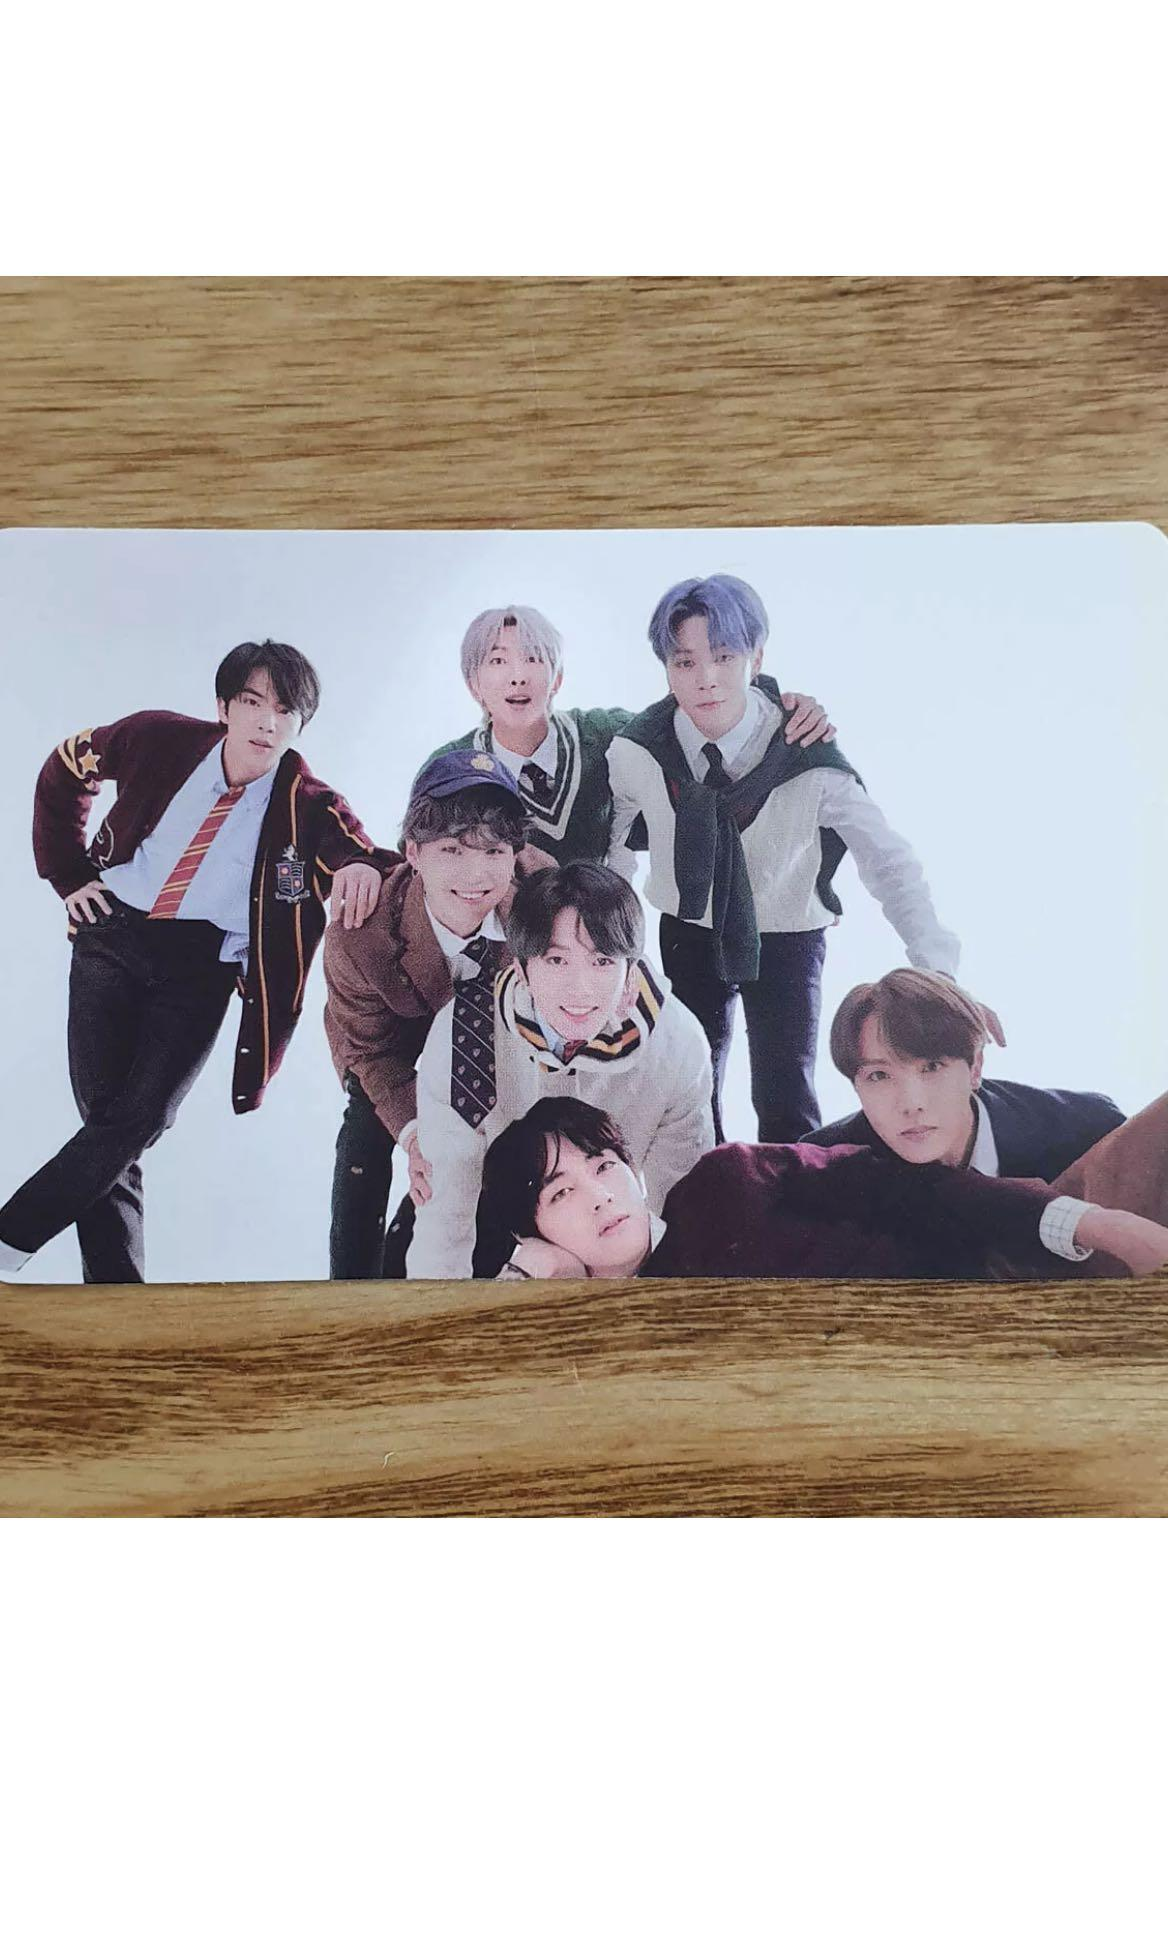 wtblf bts mots 7 vers 4 group photocard 1583765530 20471f55 progressive